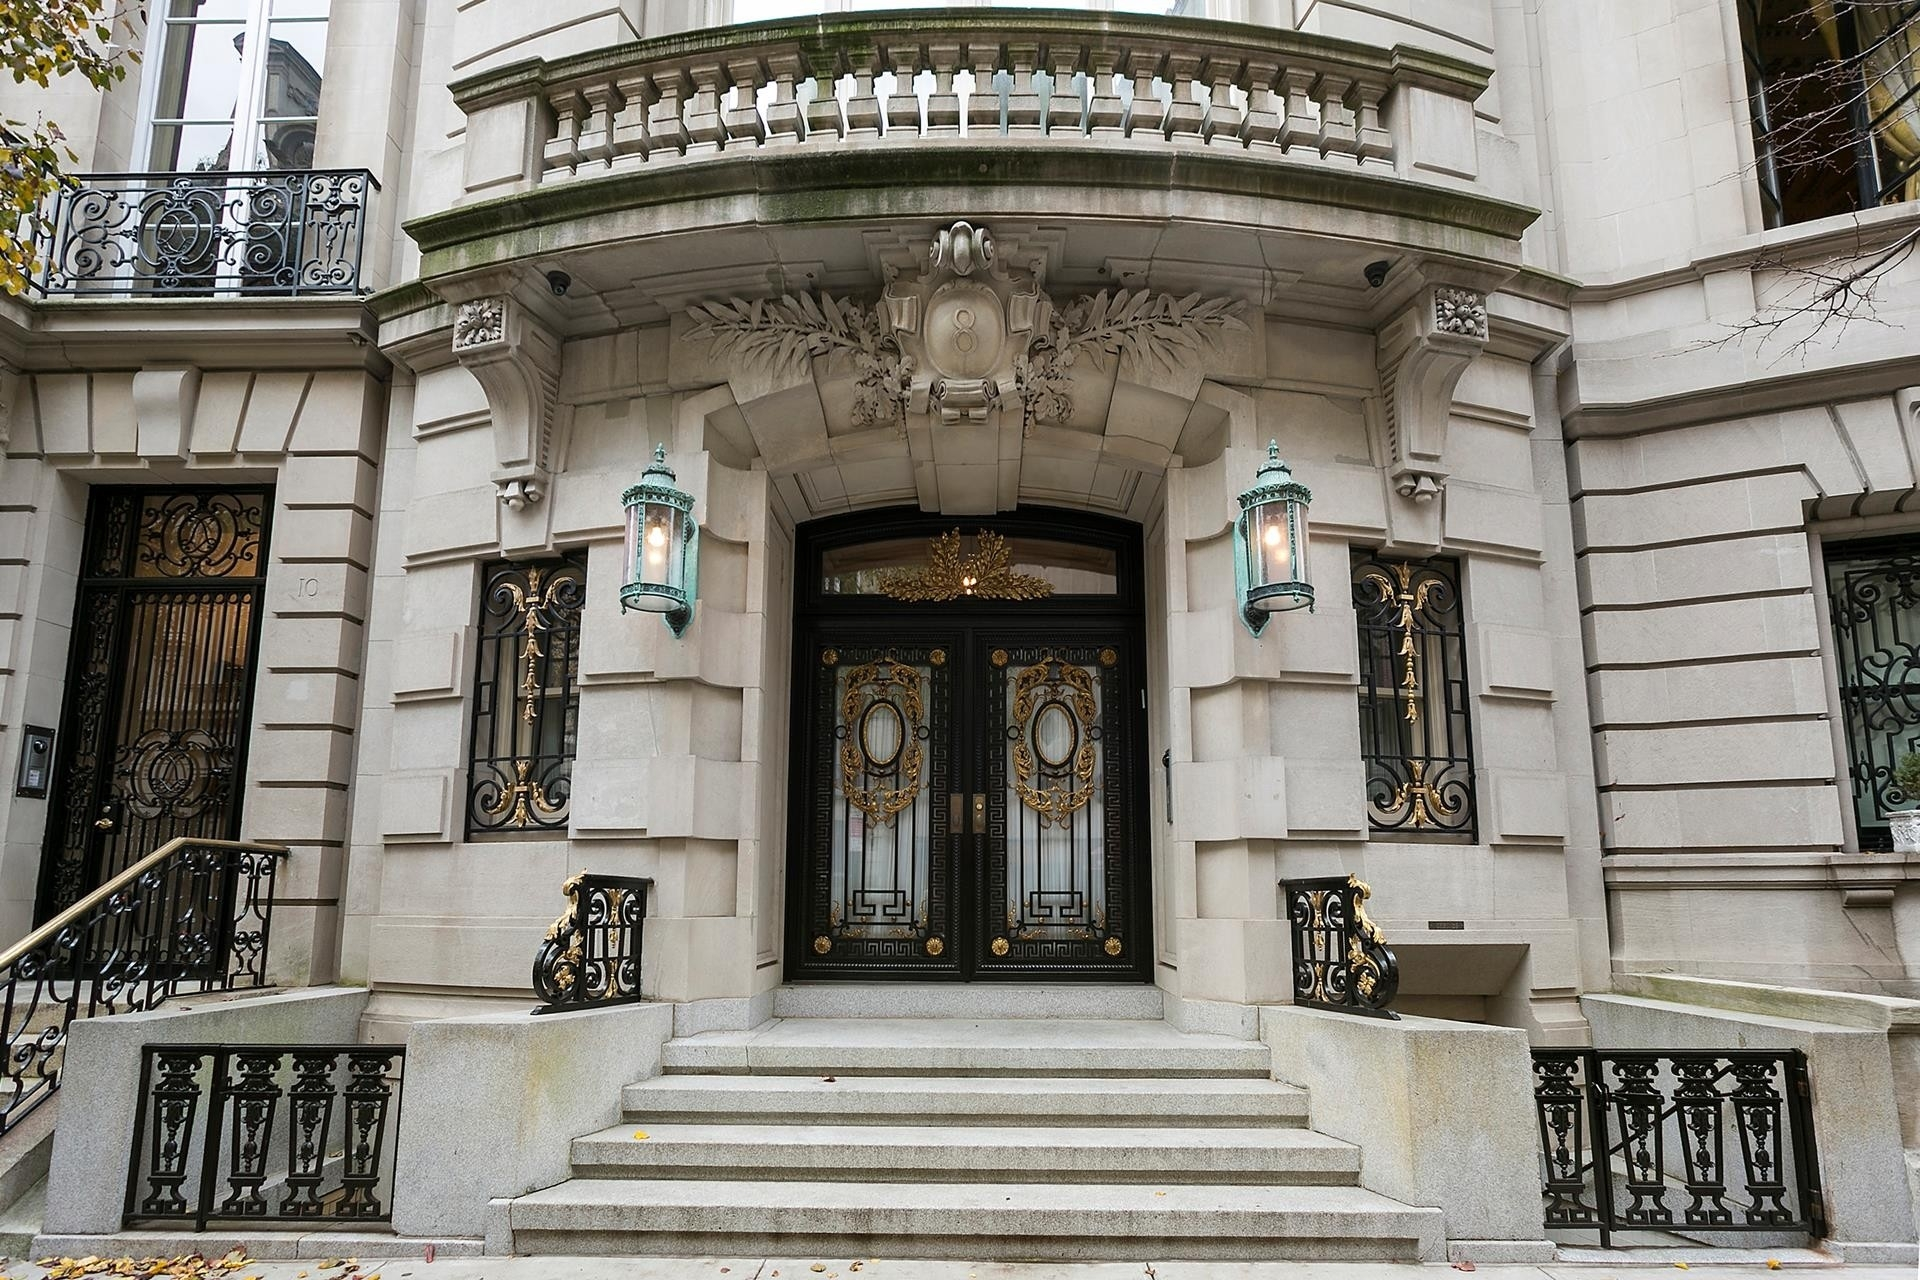 2. building at 8 East 62nd St, Lenox Hill, New York, NY